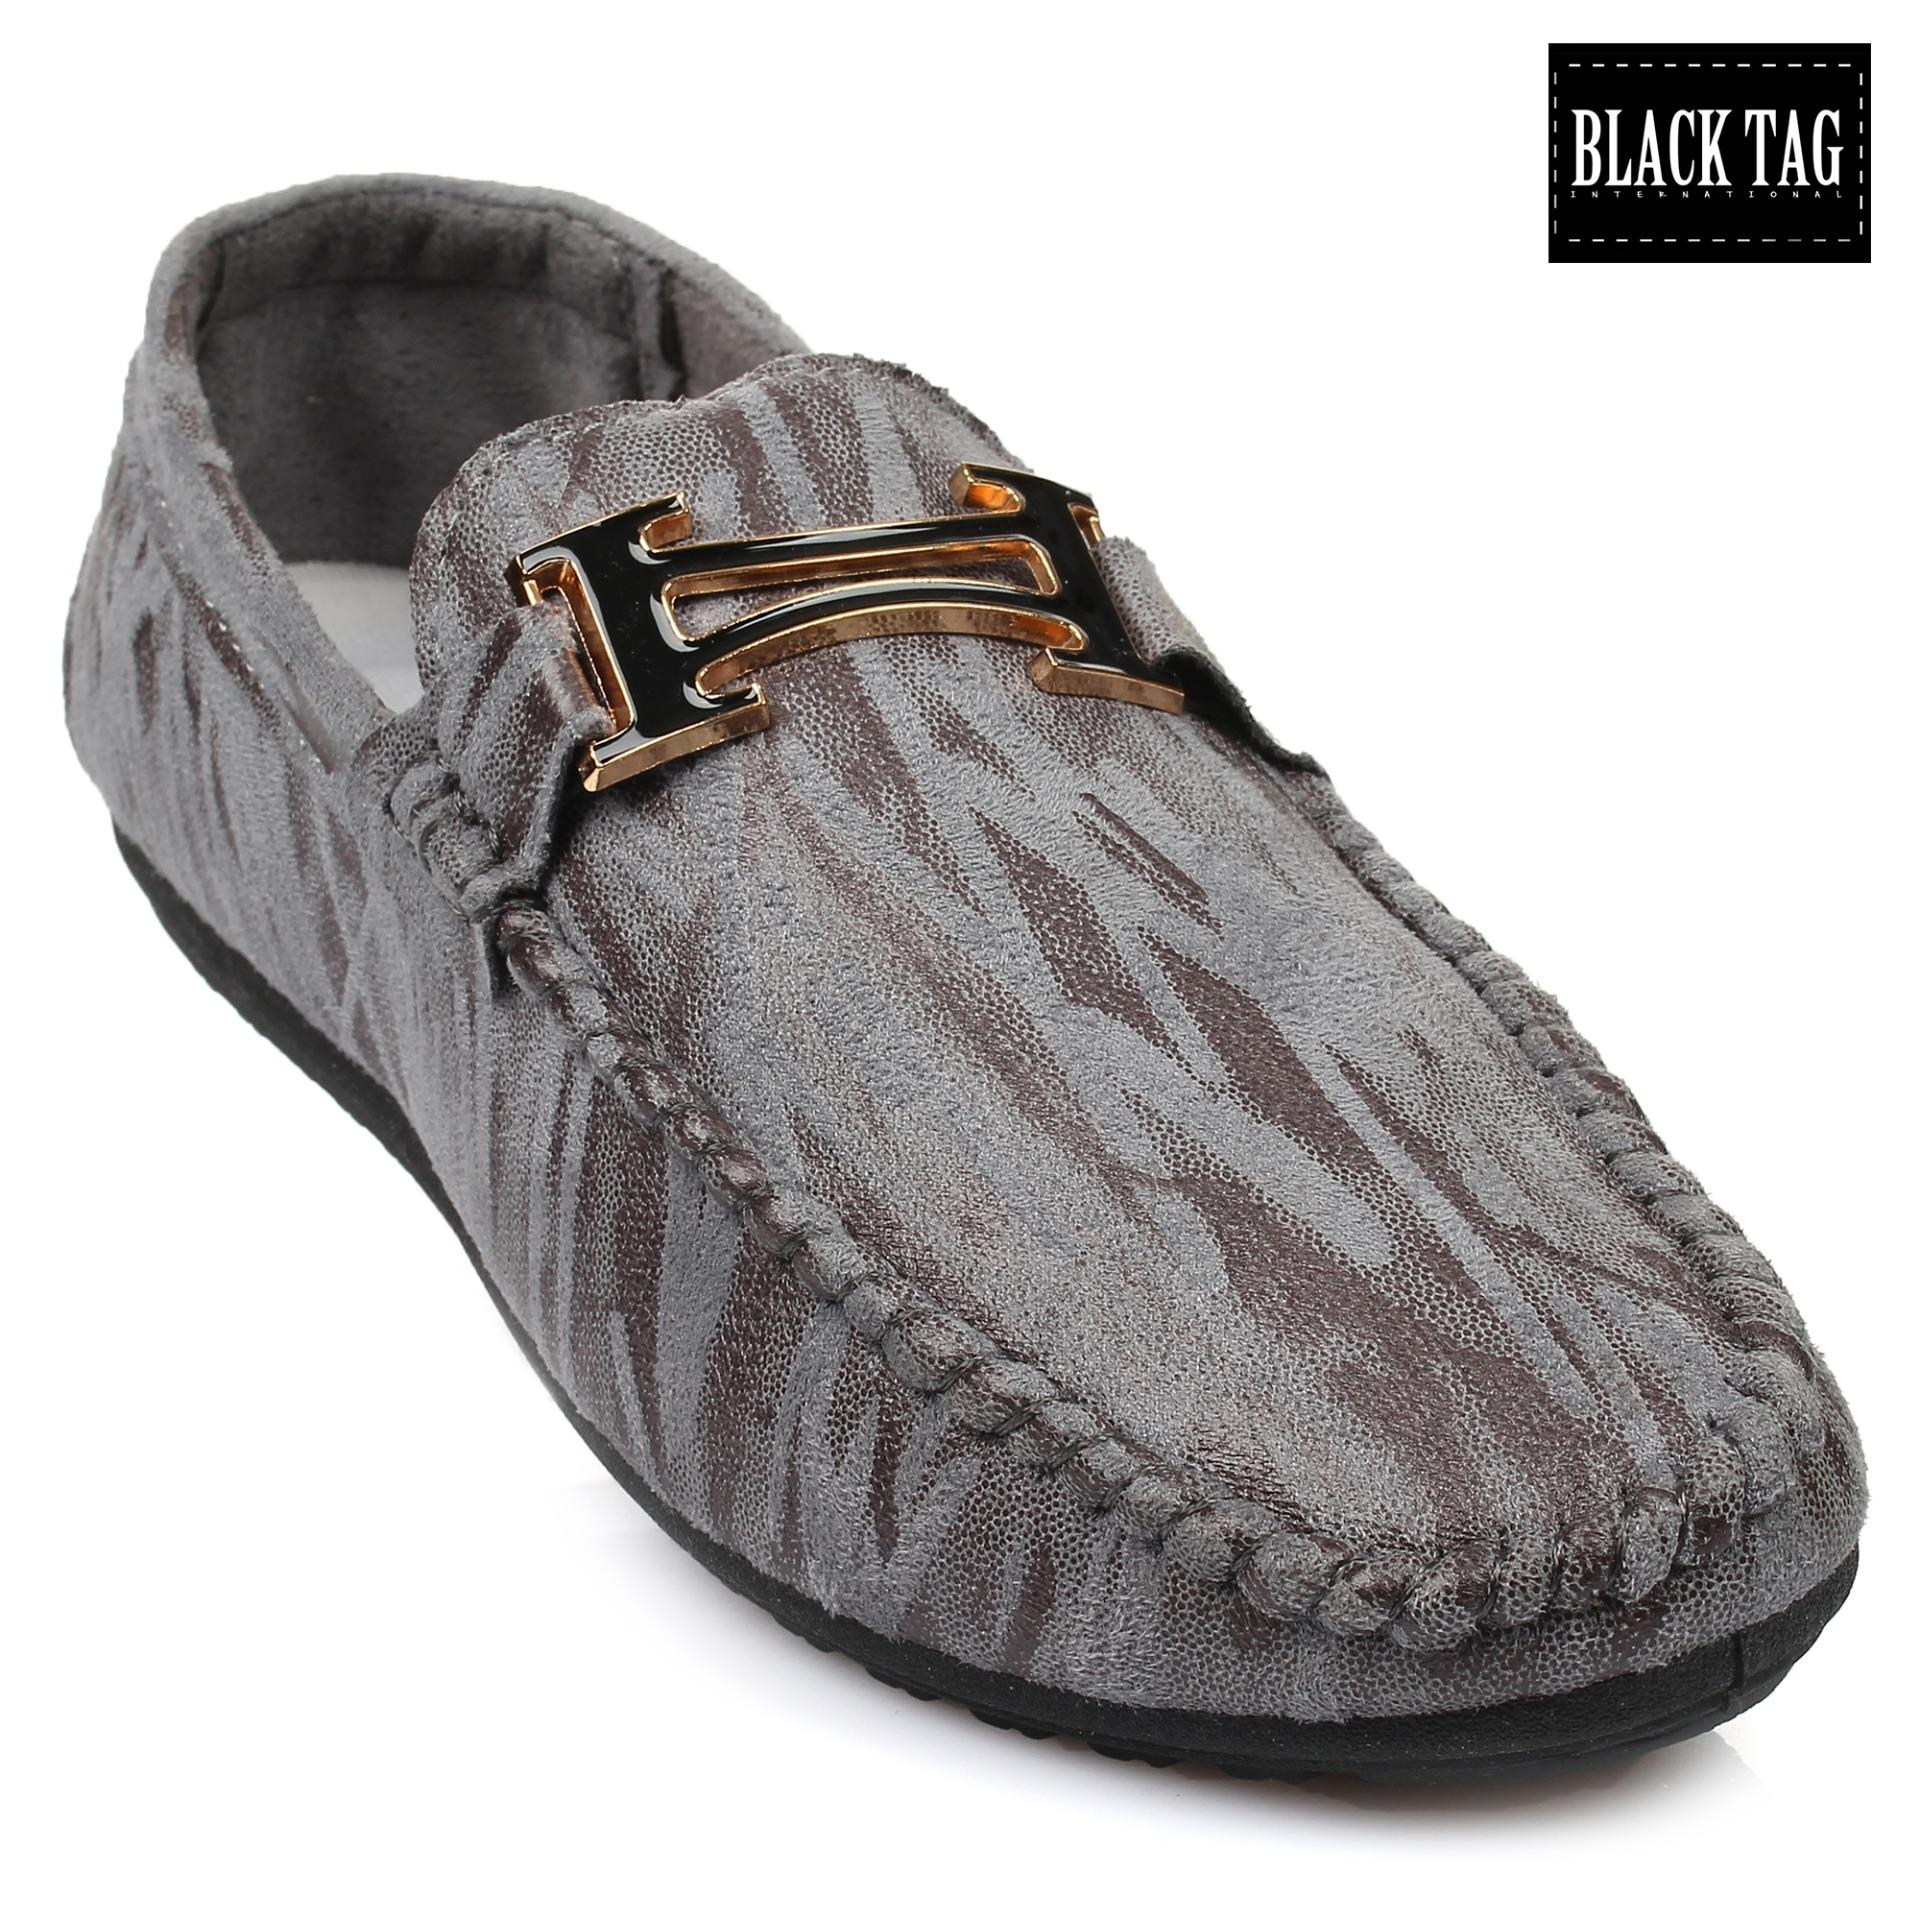 Black Tag Russel D06 Casual/Formal Slip-on Leather Shoes